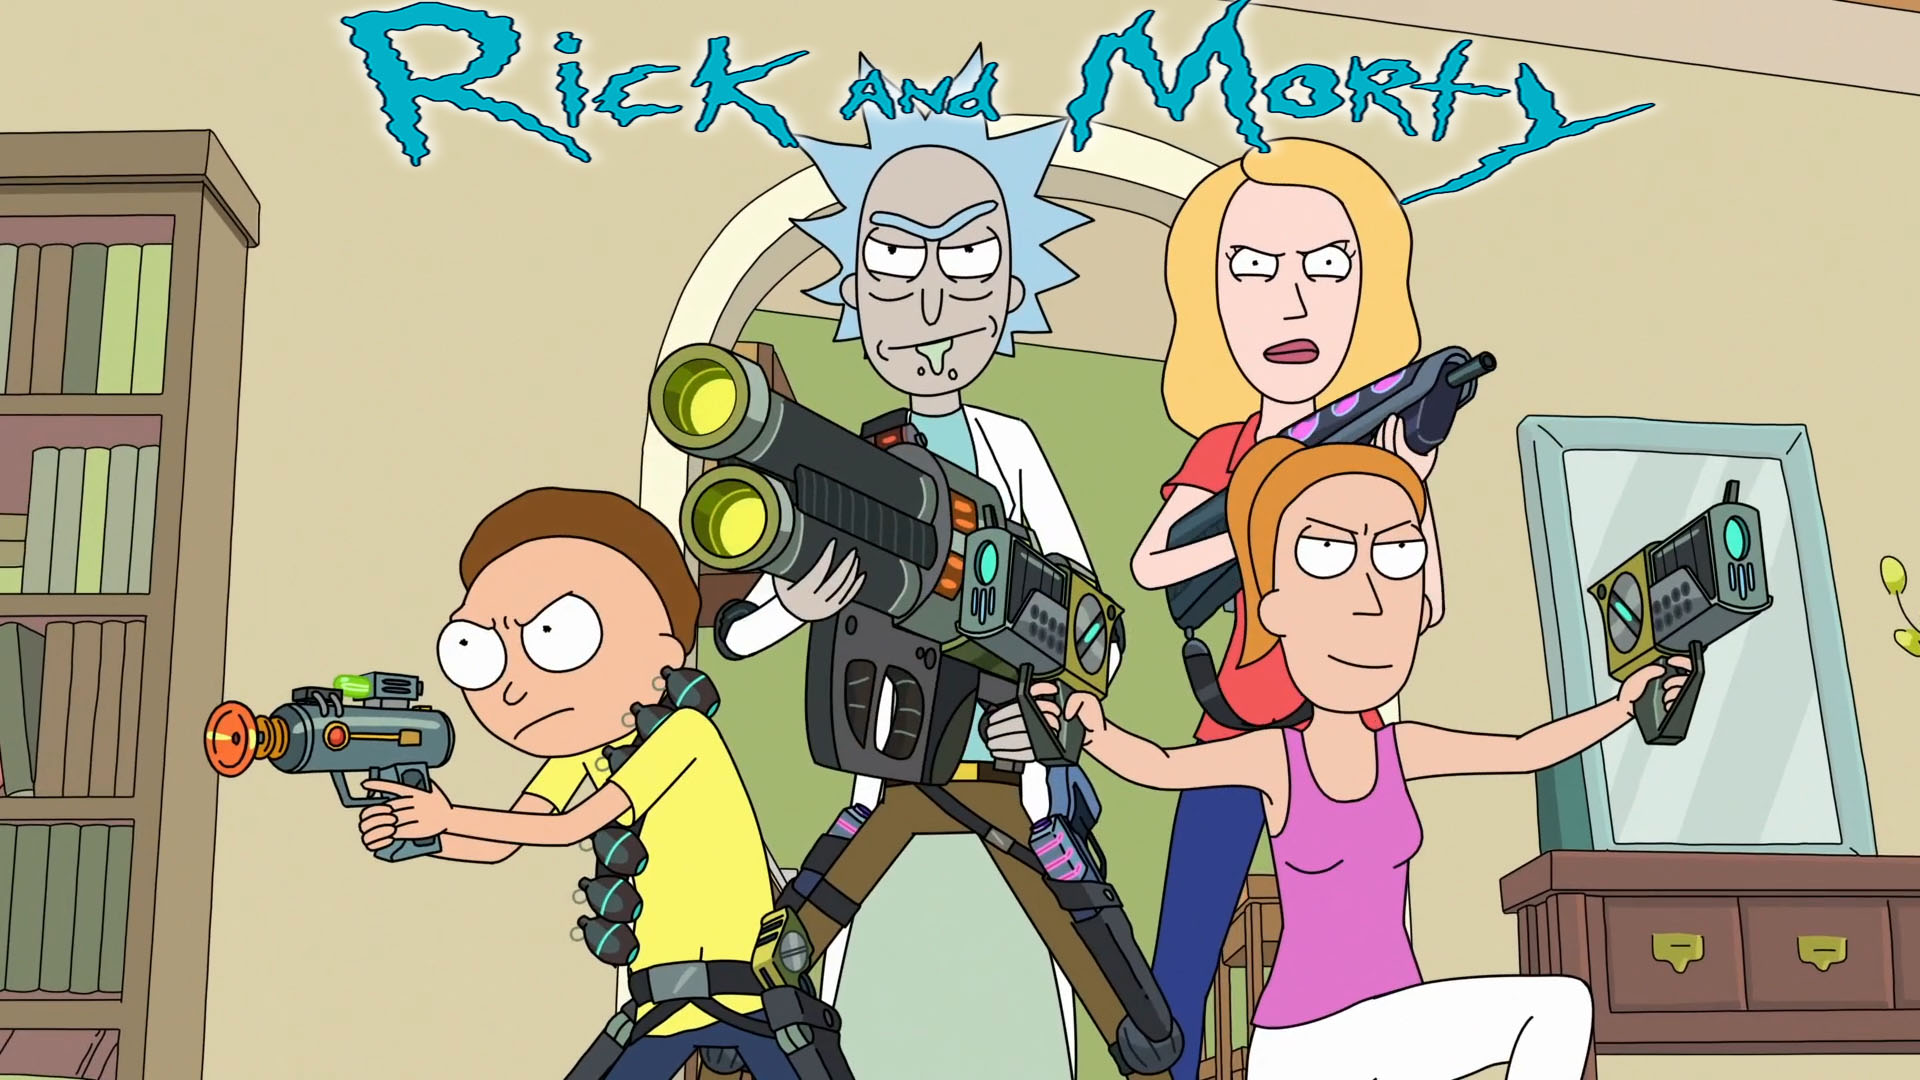 Rick and Morty Season 4 Episode 6 Air Date Summer Smith's Voice Actress Leaks the Series Return Date